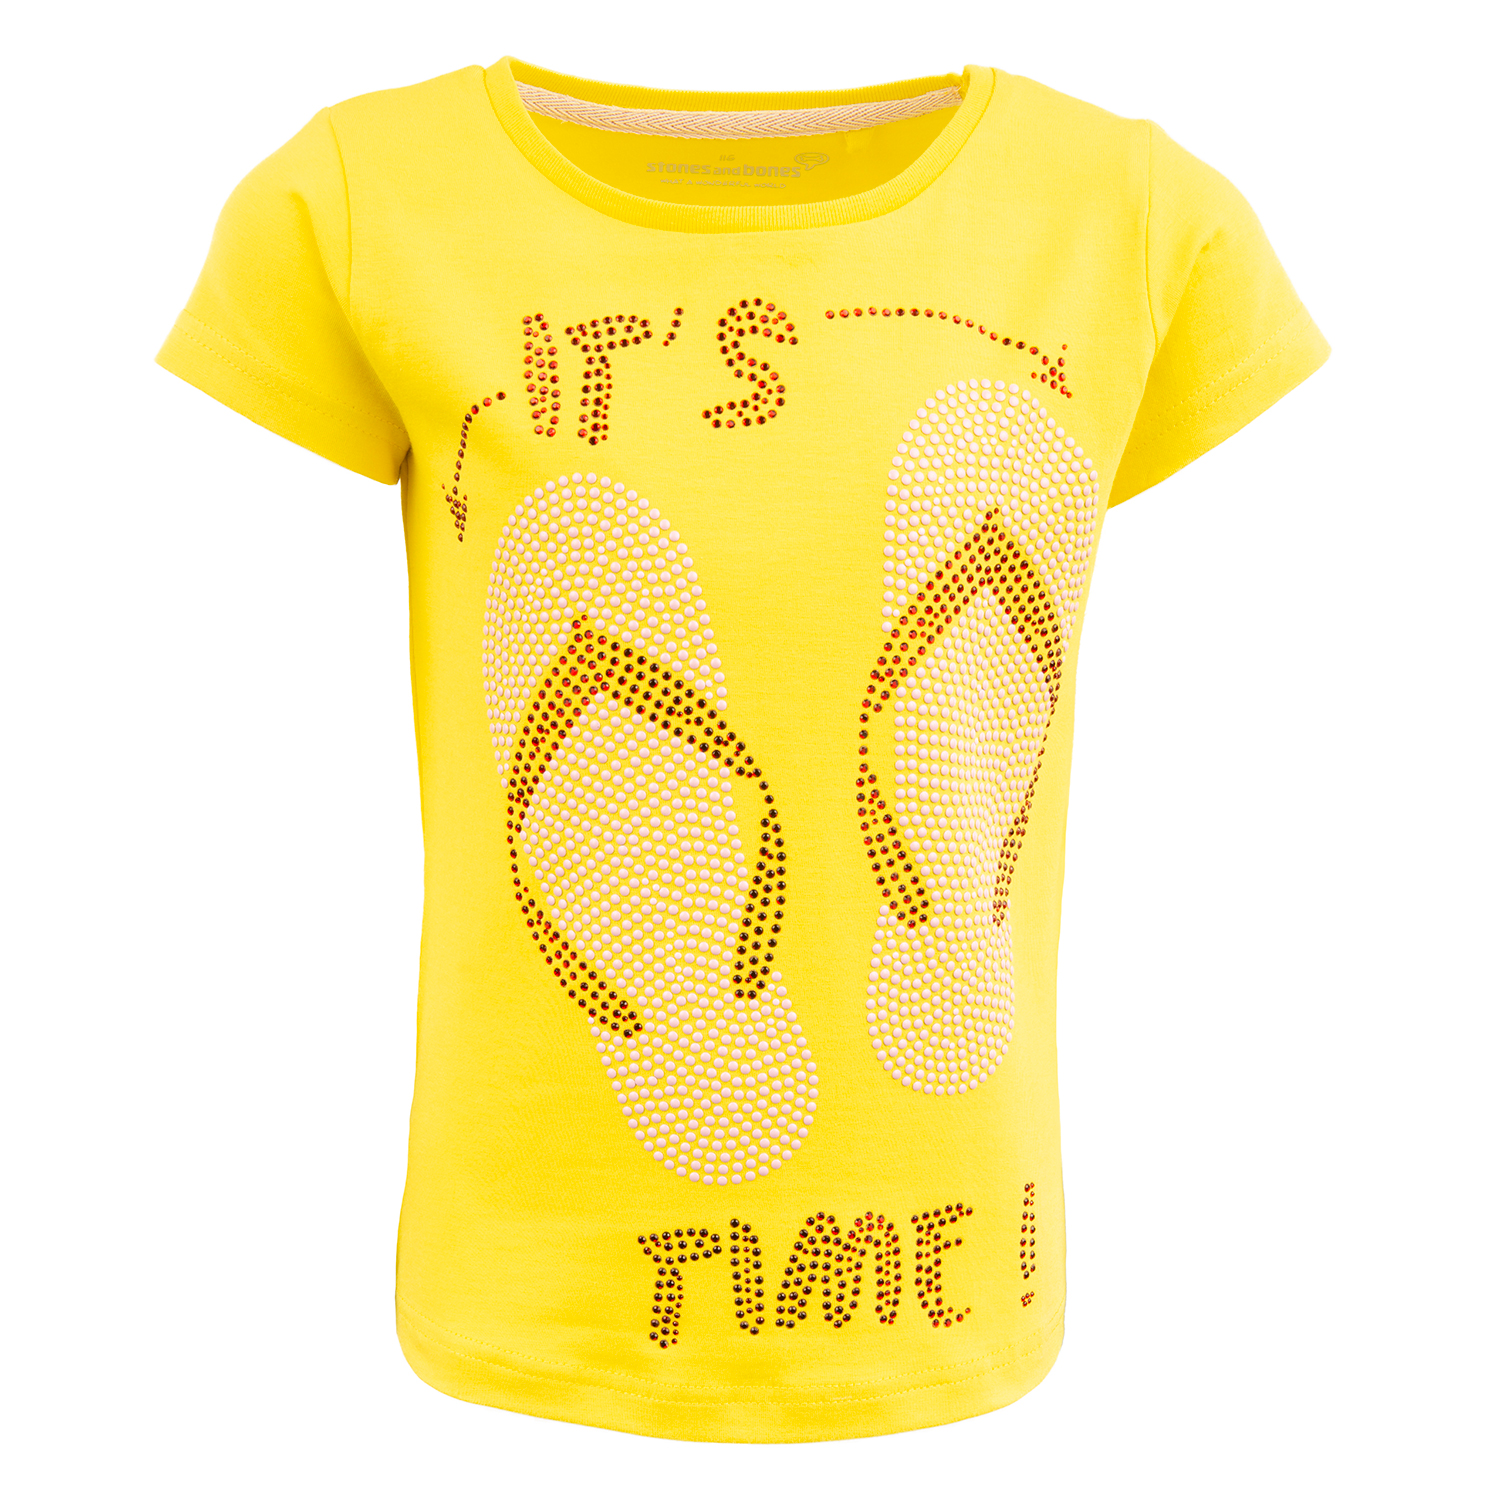 Camille - FLIPFLOP TIME yellow